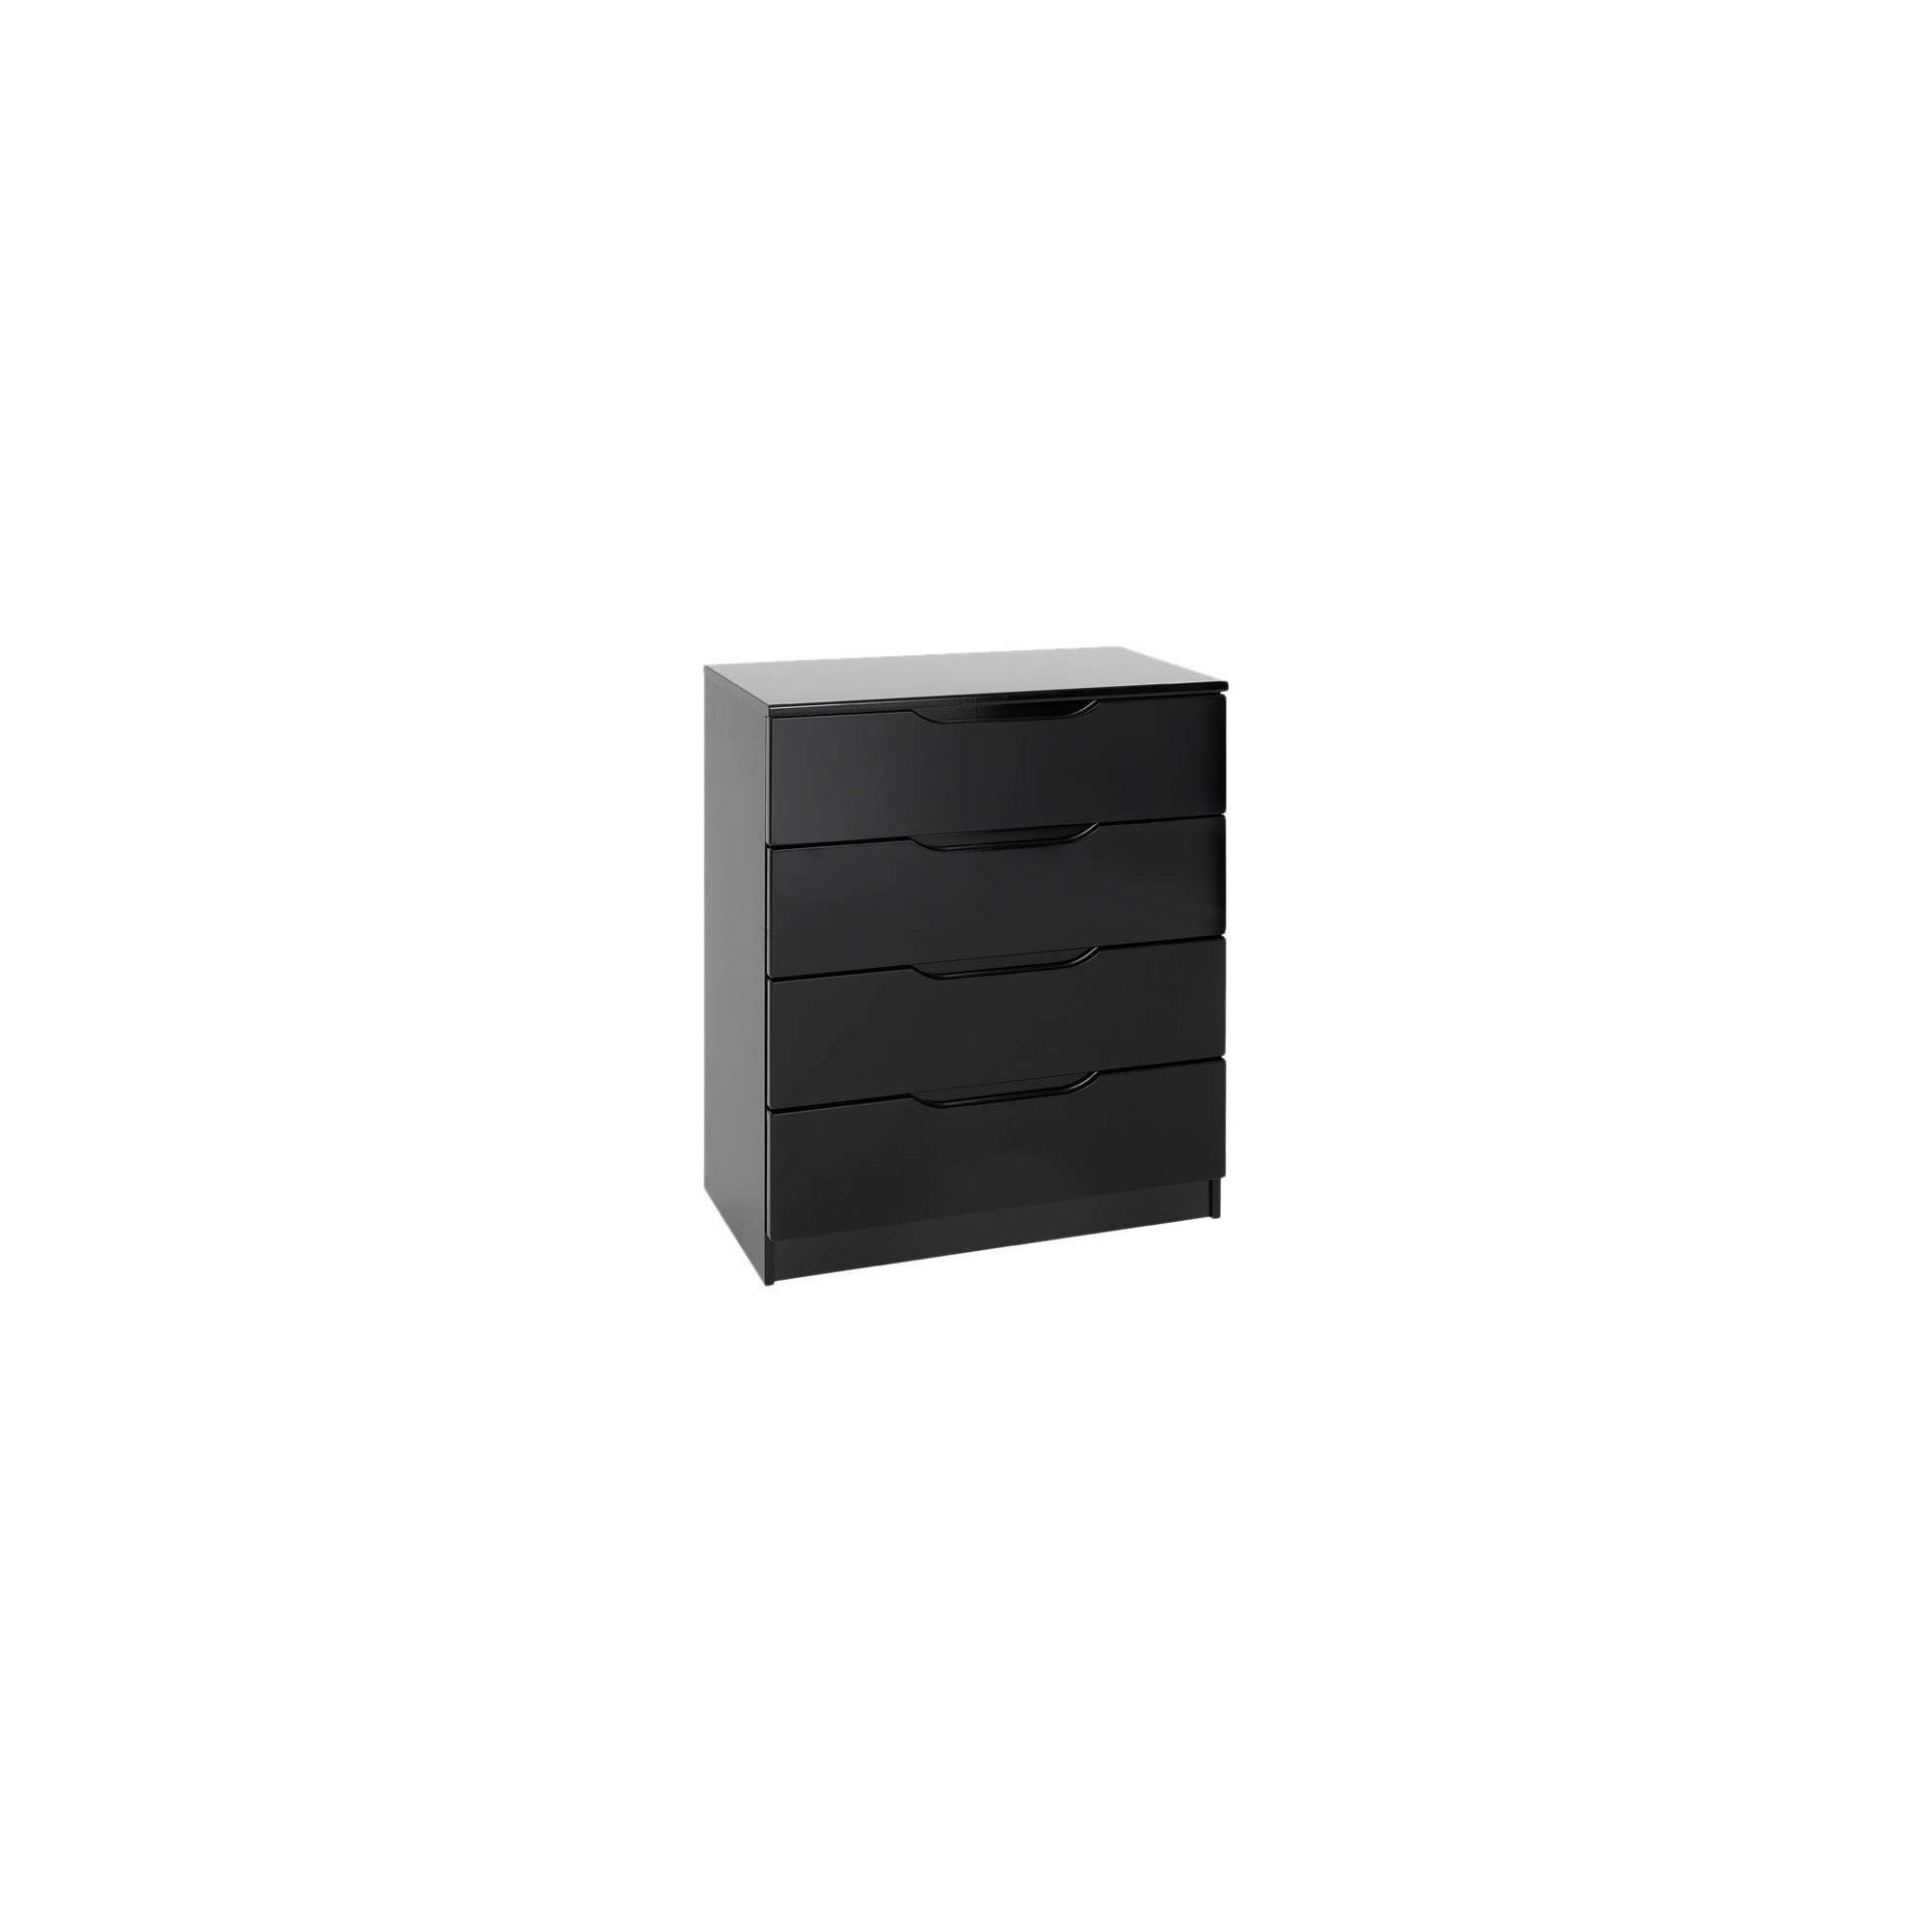 Alto Furniture Visualise Orient 4 Drawer Chest at Tesco Direct